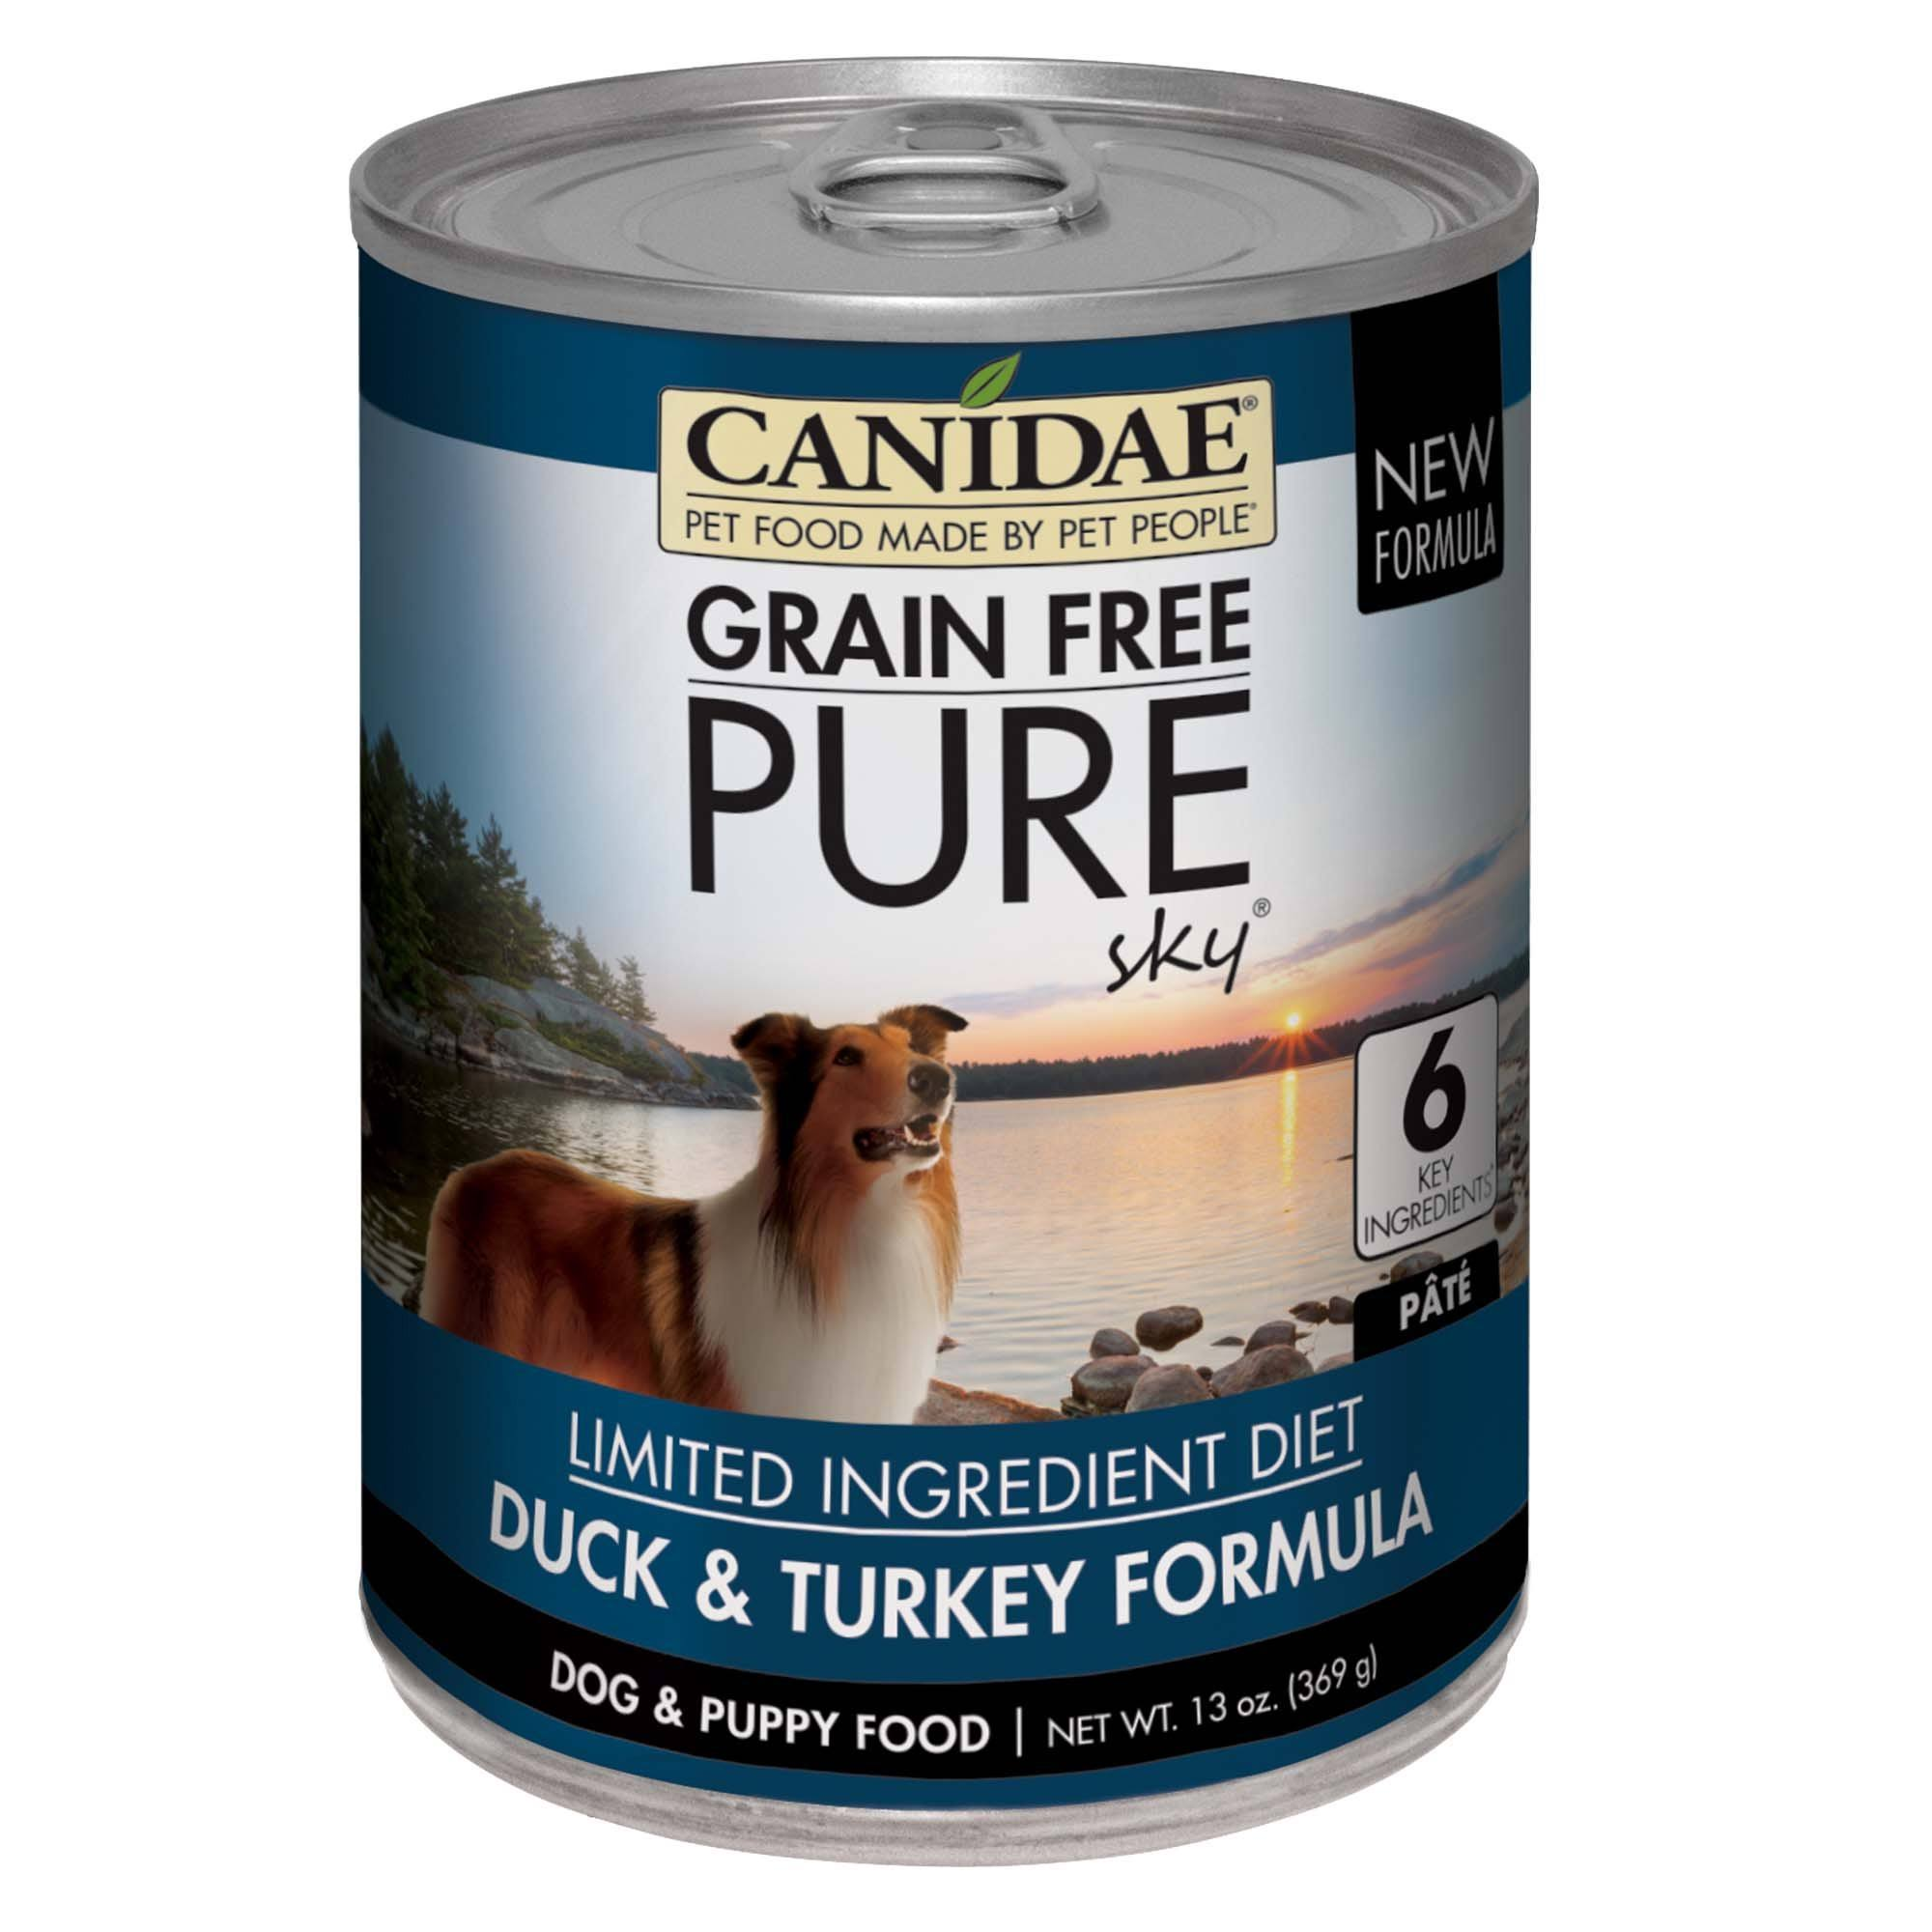 Canidae Grain Free Pure Sky Canned Dog Food - Duck & Turkey Formula, 13 oz